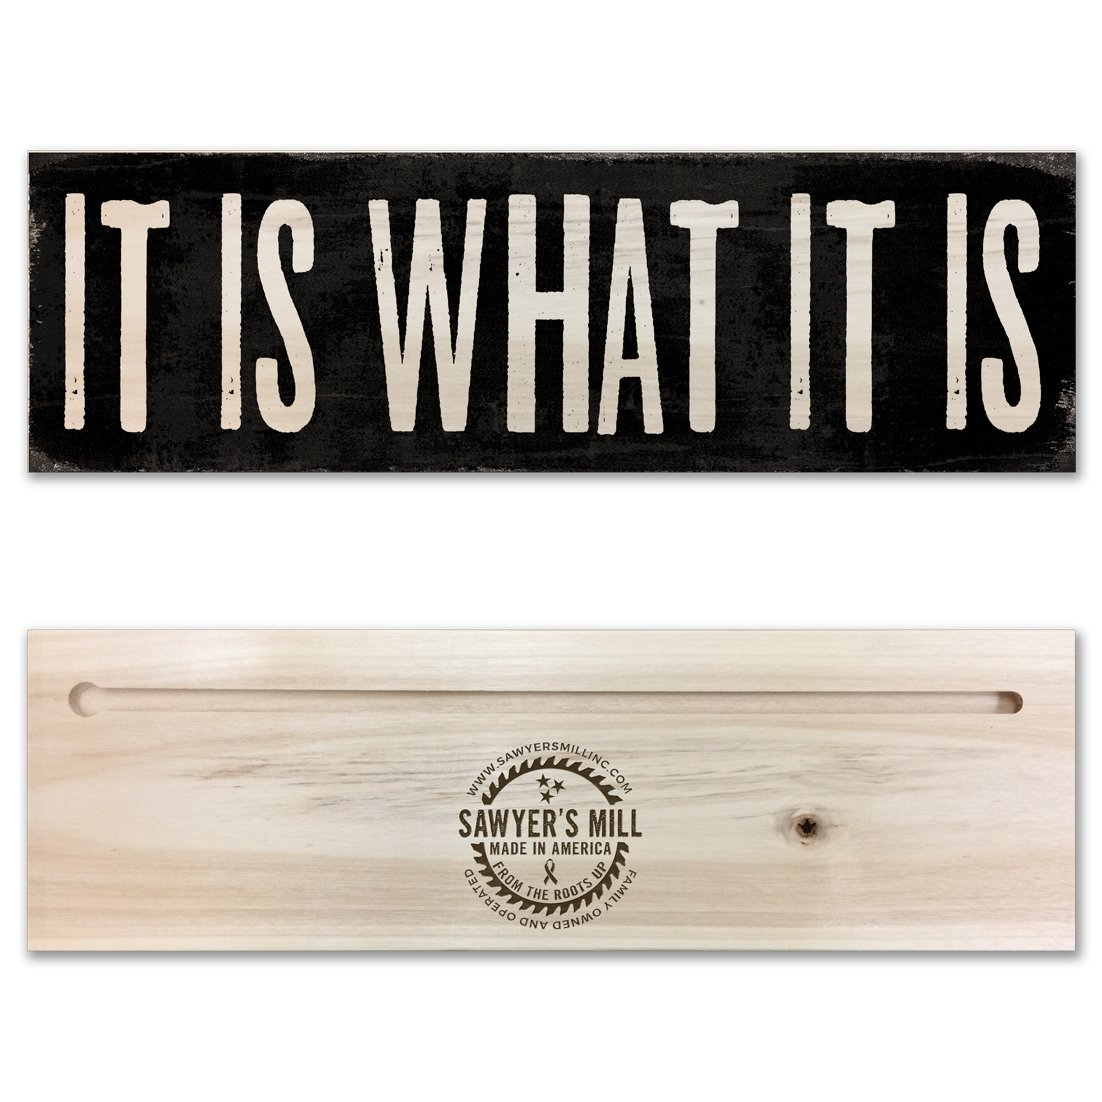 It Is What It Is - Simple Handmade Wood Block Sign for Home Wall Decor